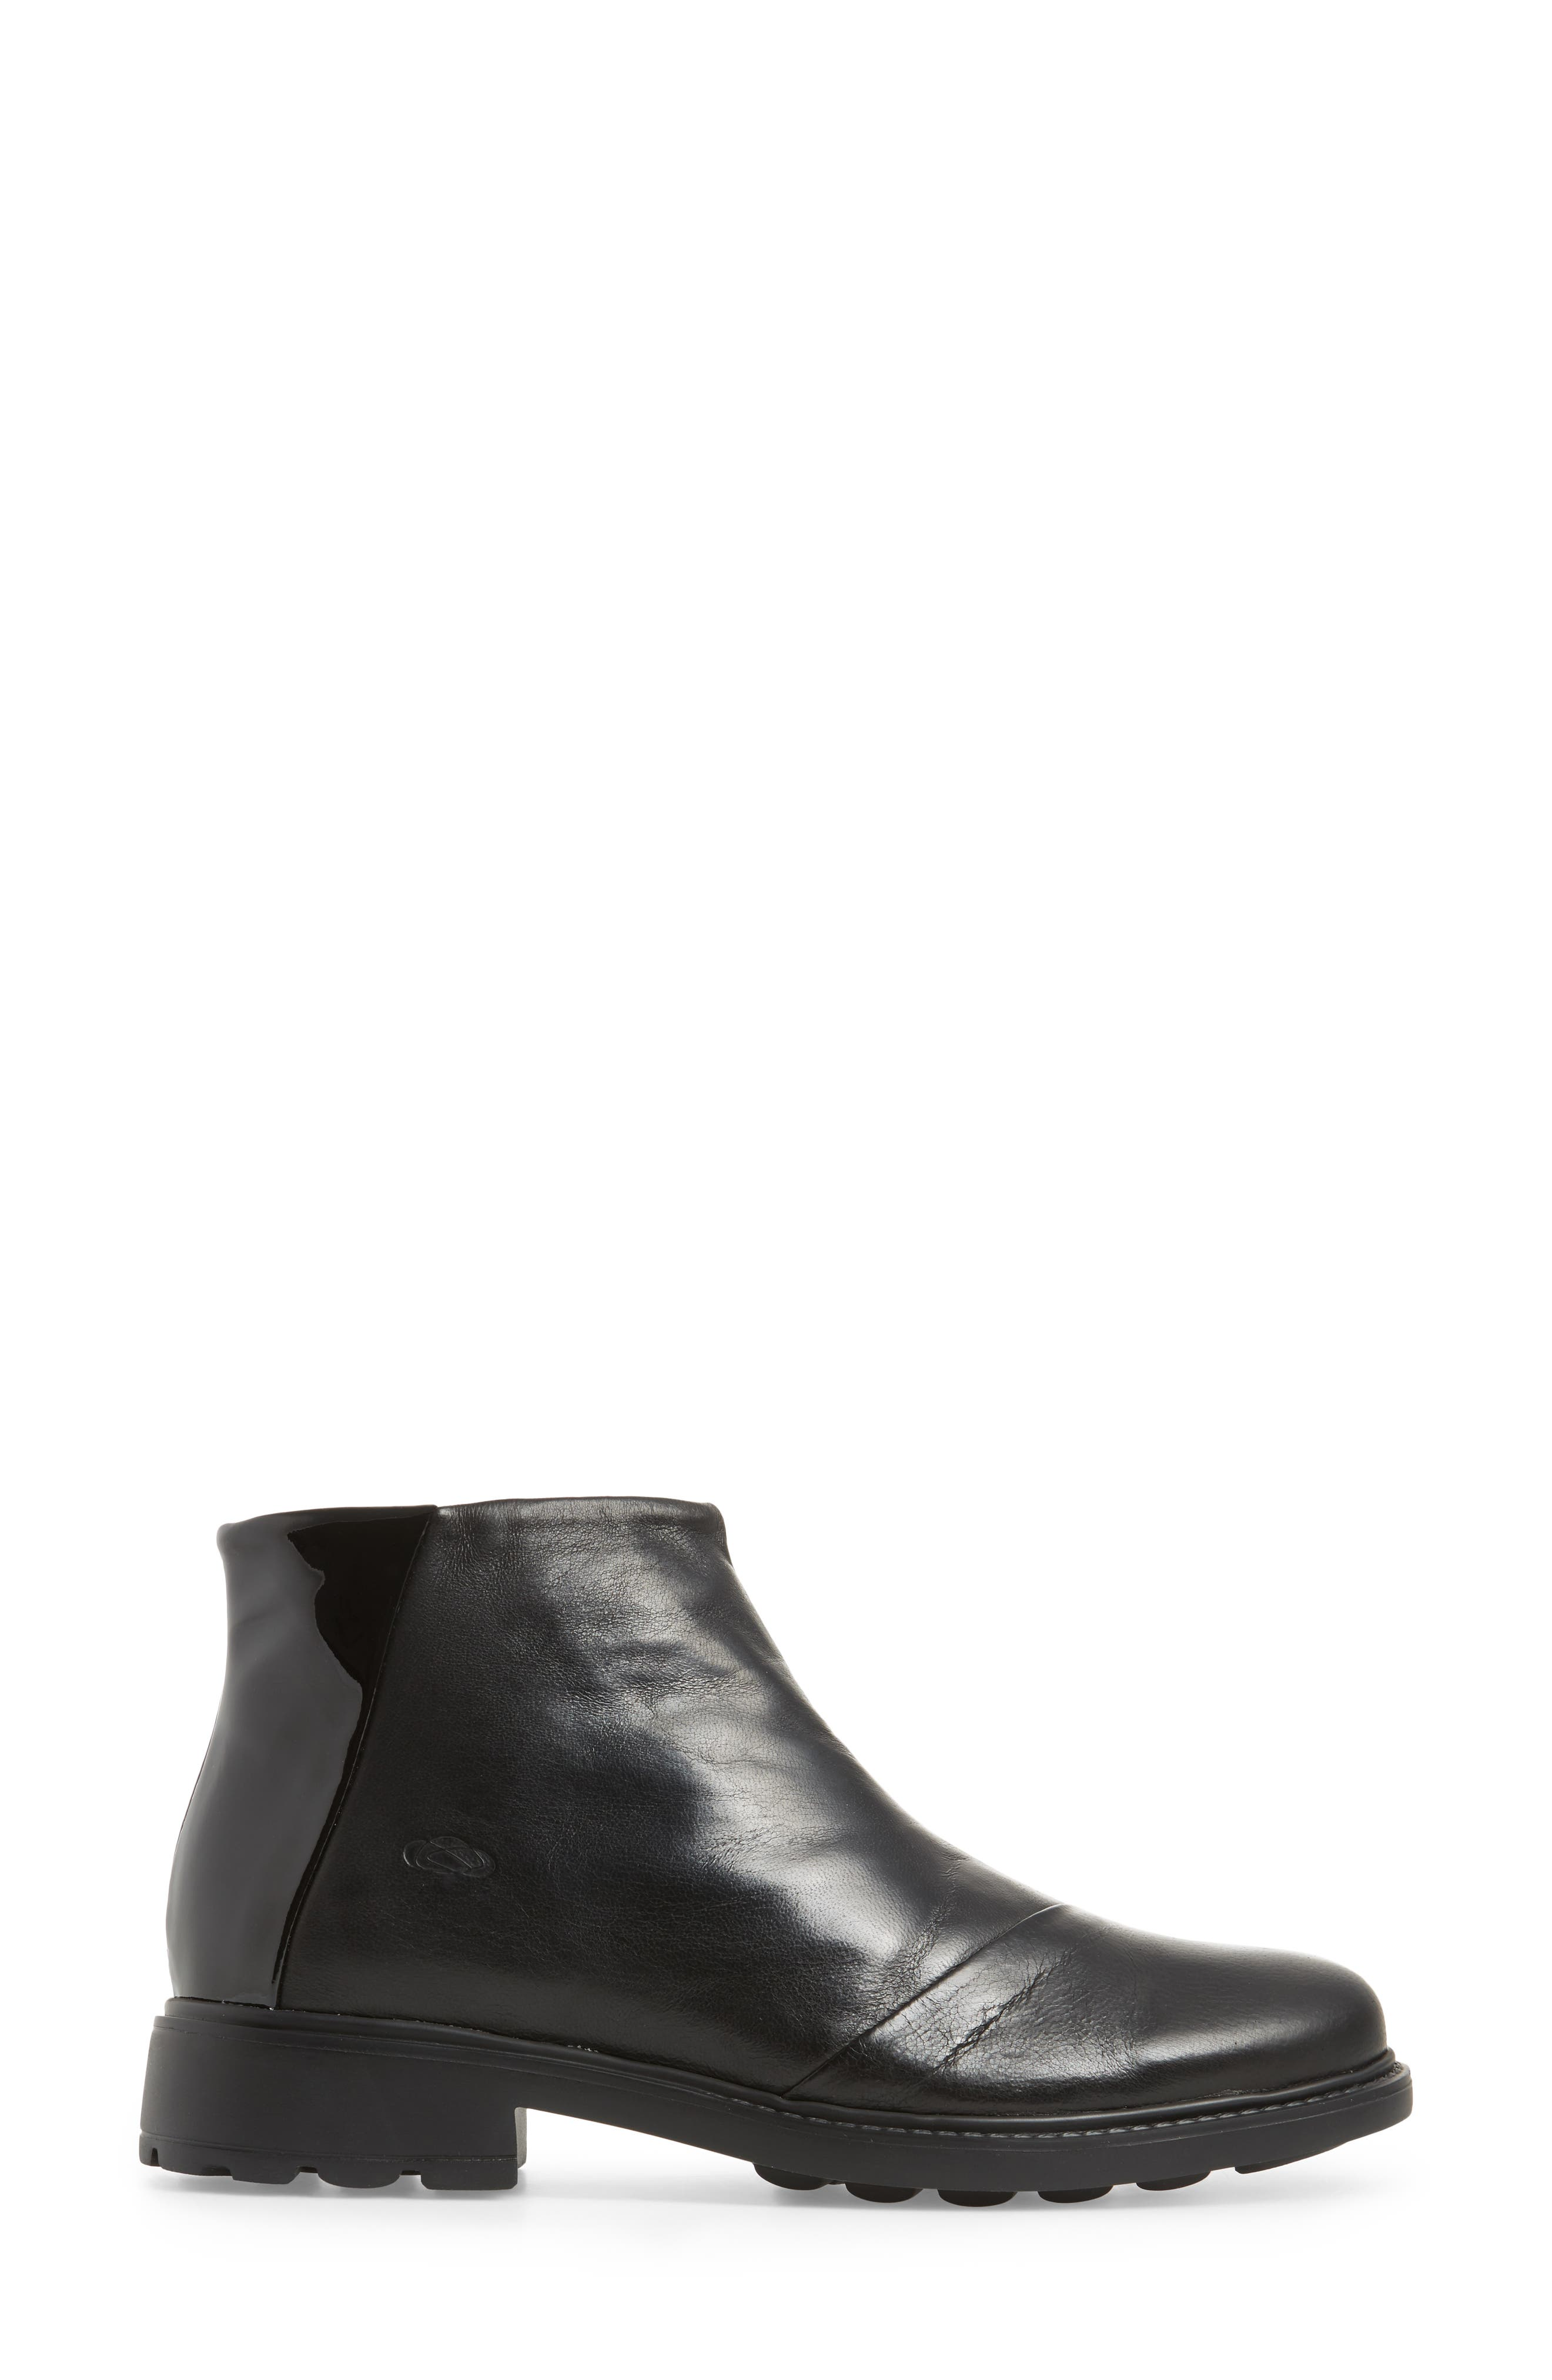 Penny Bootie,                             Alternate thumbnail 3, color,                             Black Leather